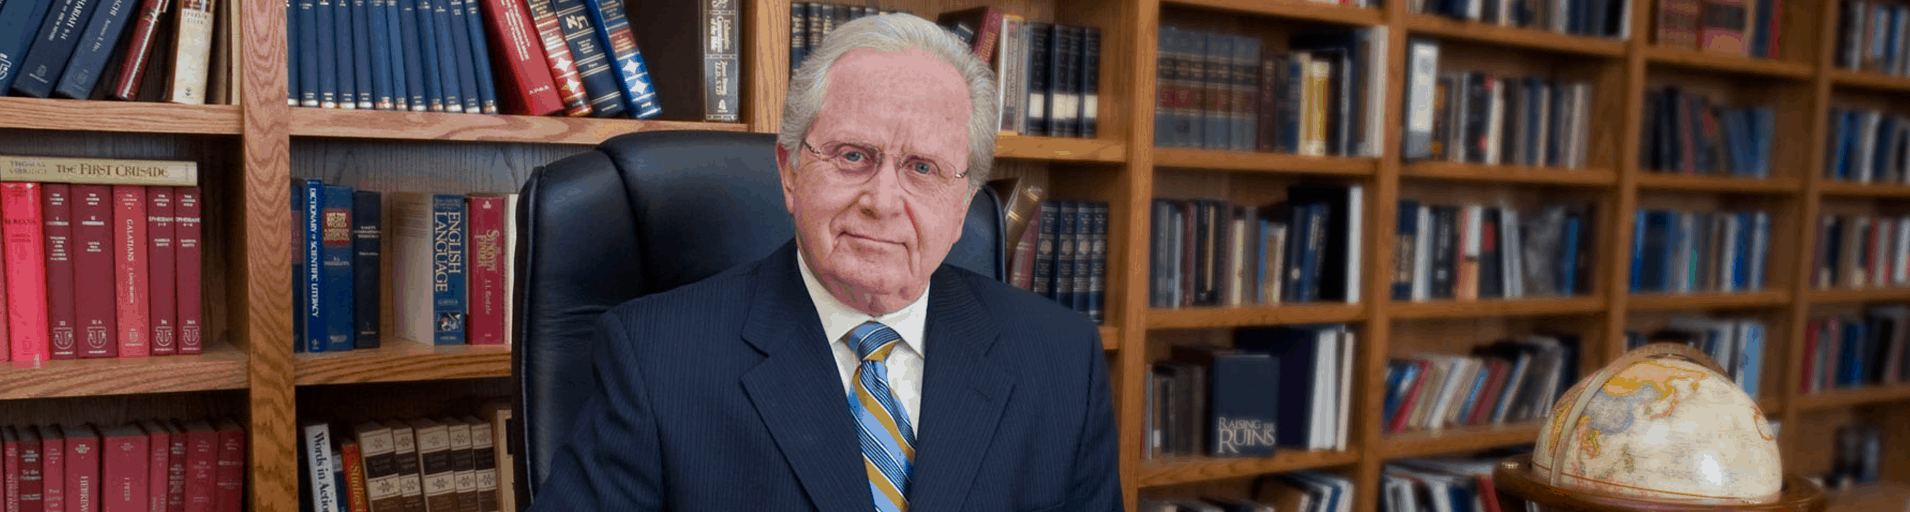 Who is Gerald Flurry?